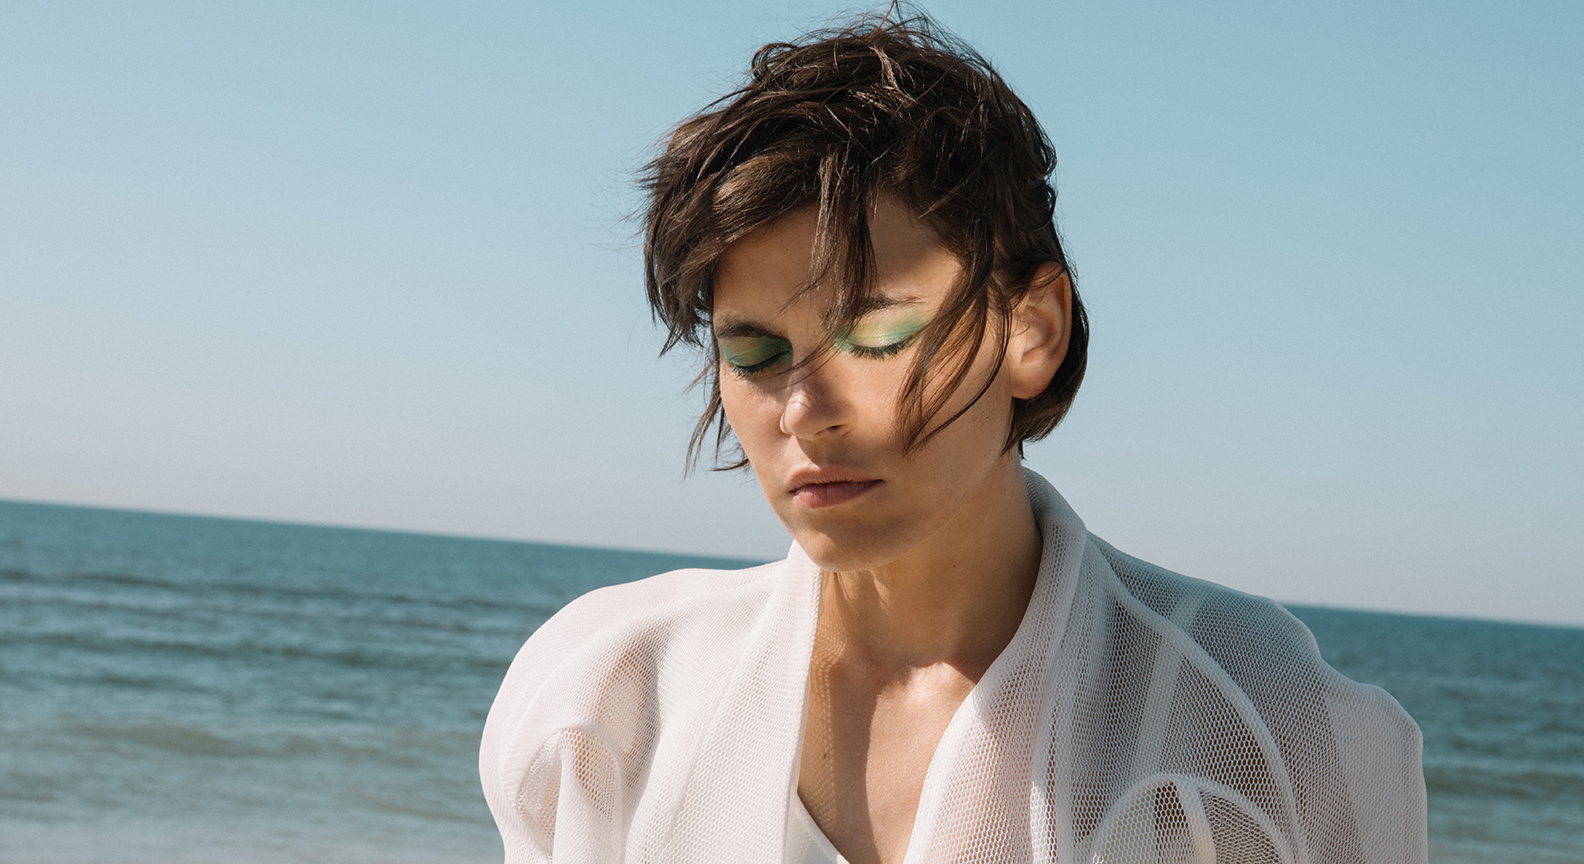 Kaki King standing at a beach with her eyes closed, with a light shining on her face.